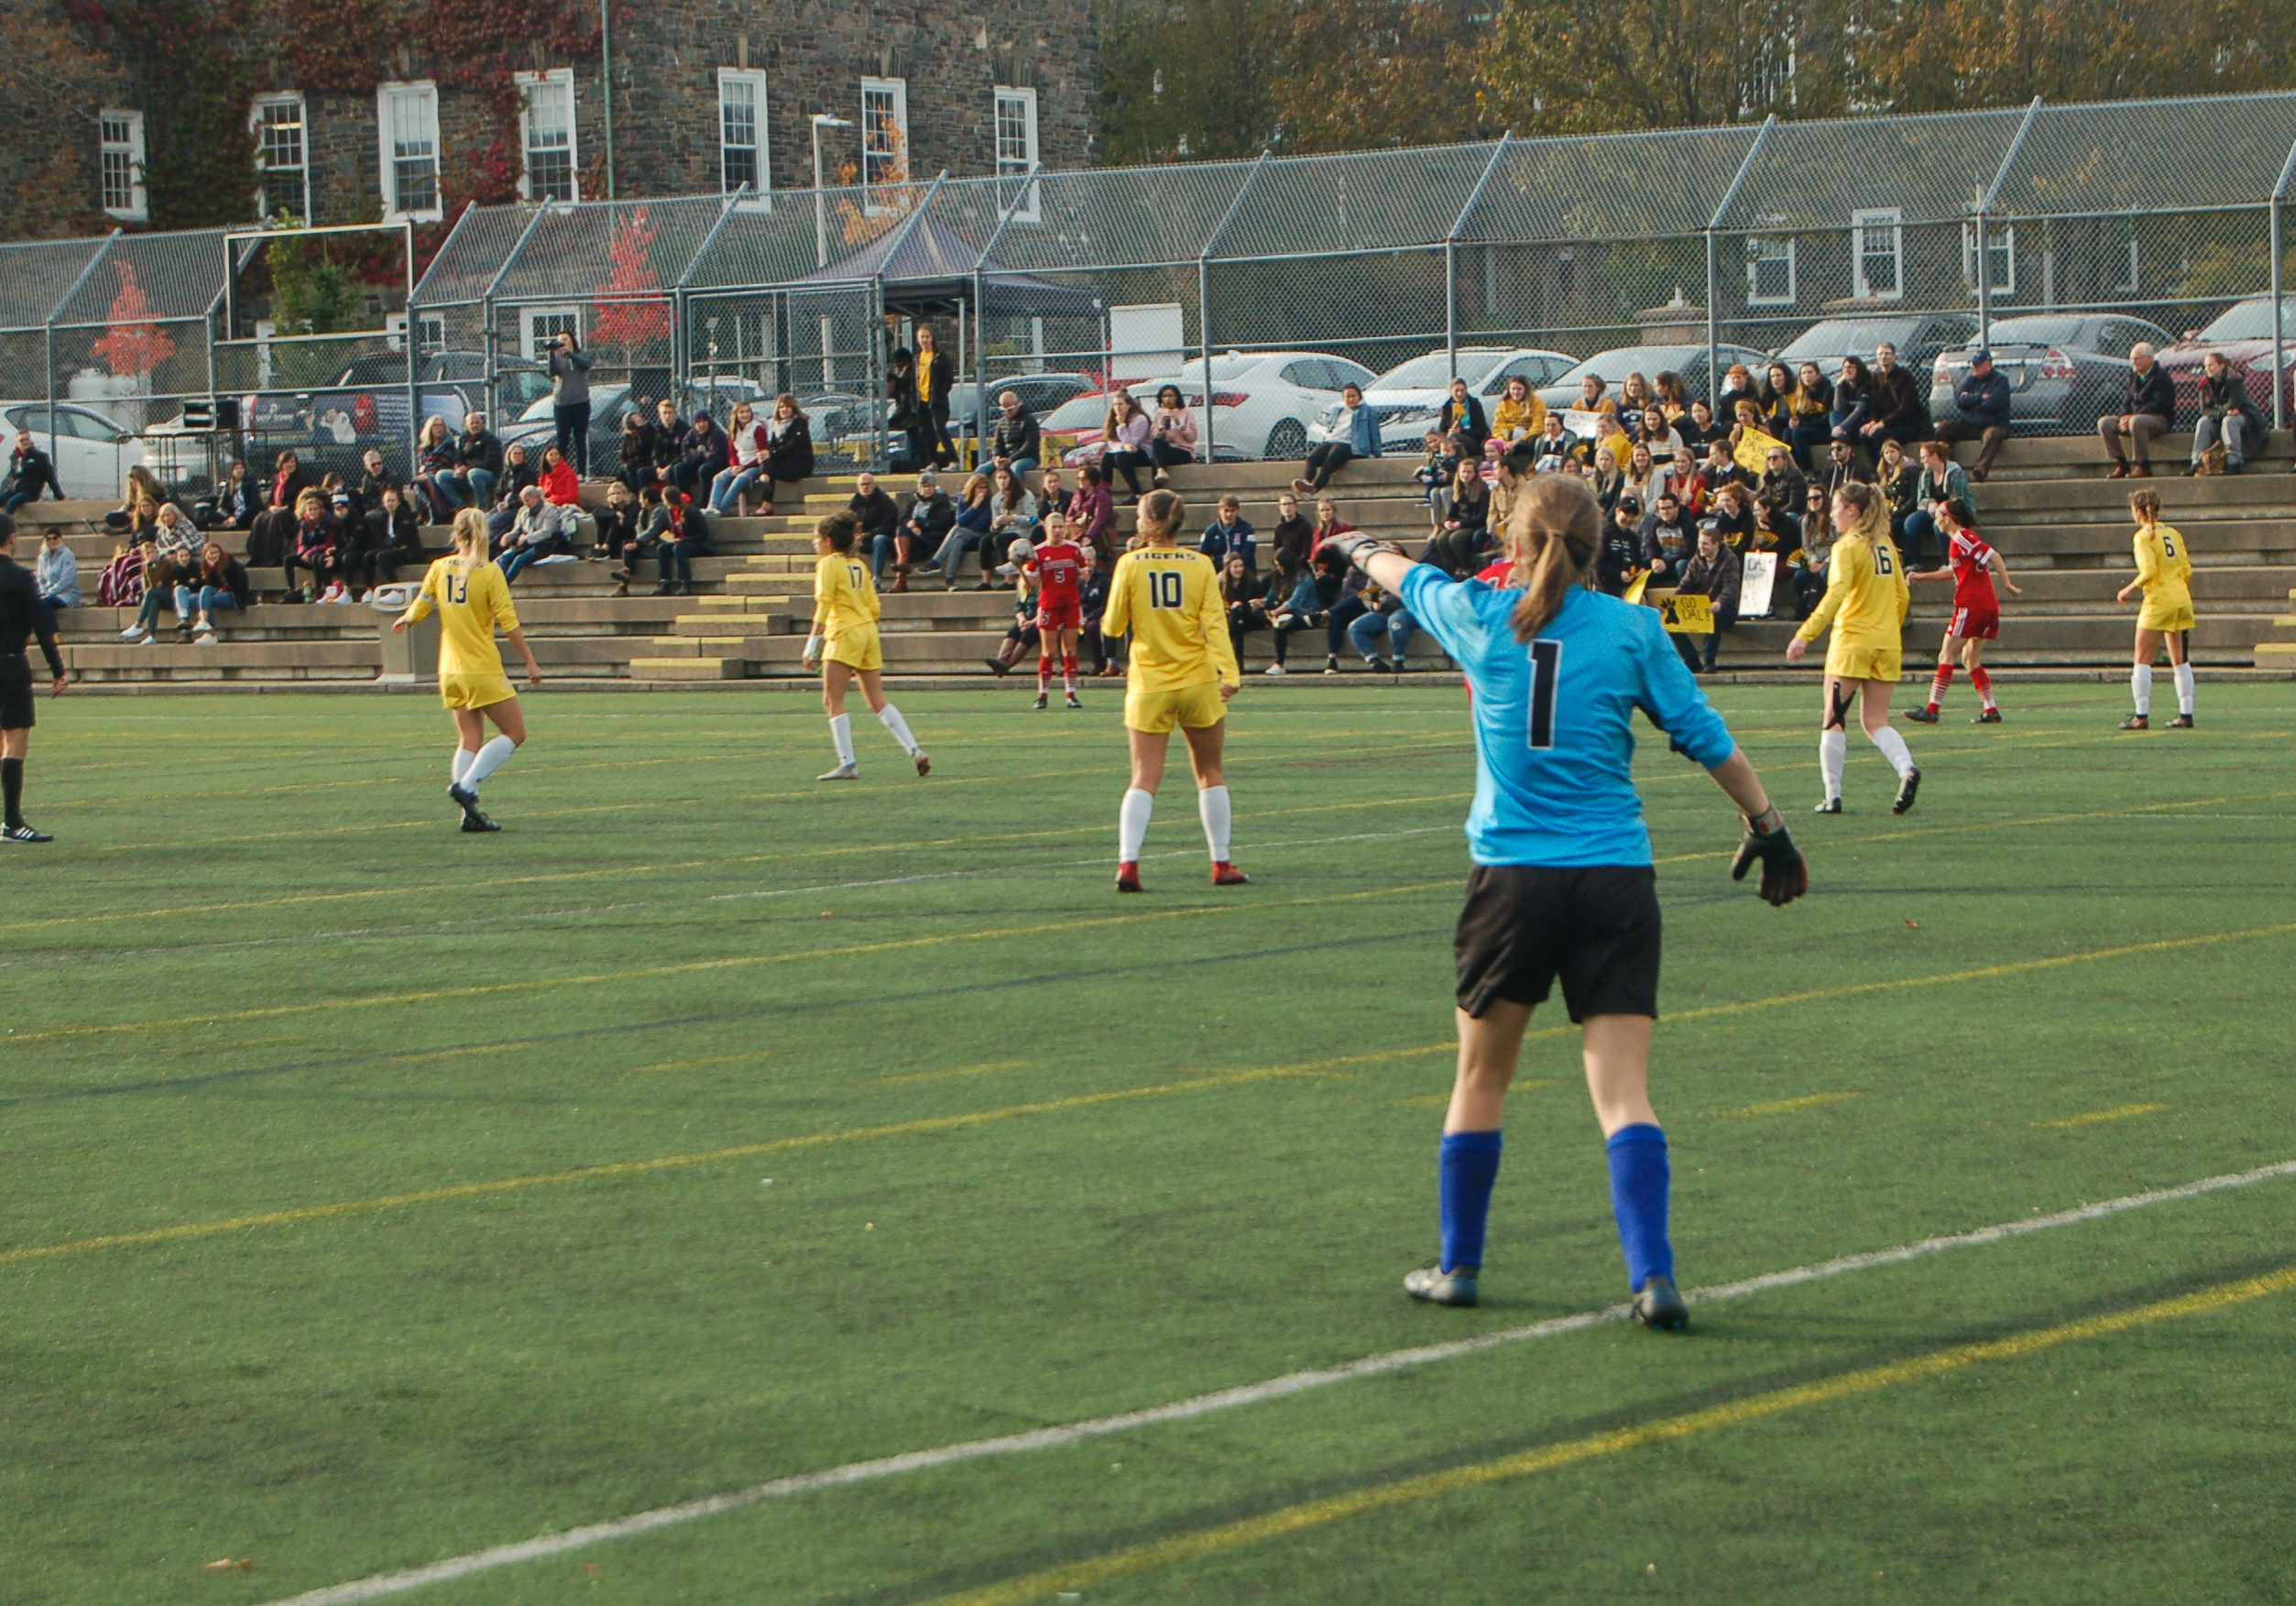 In this image: A women's soccer game at Dalhousie University.